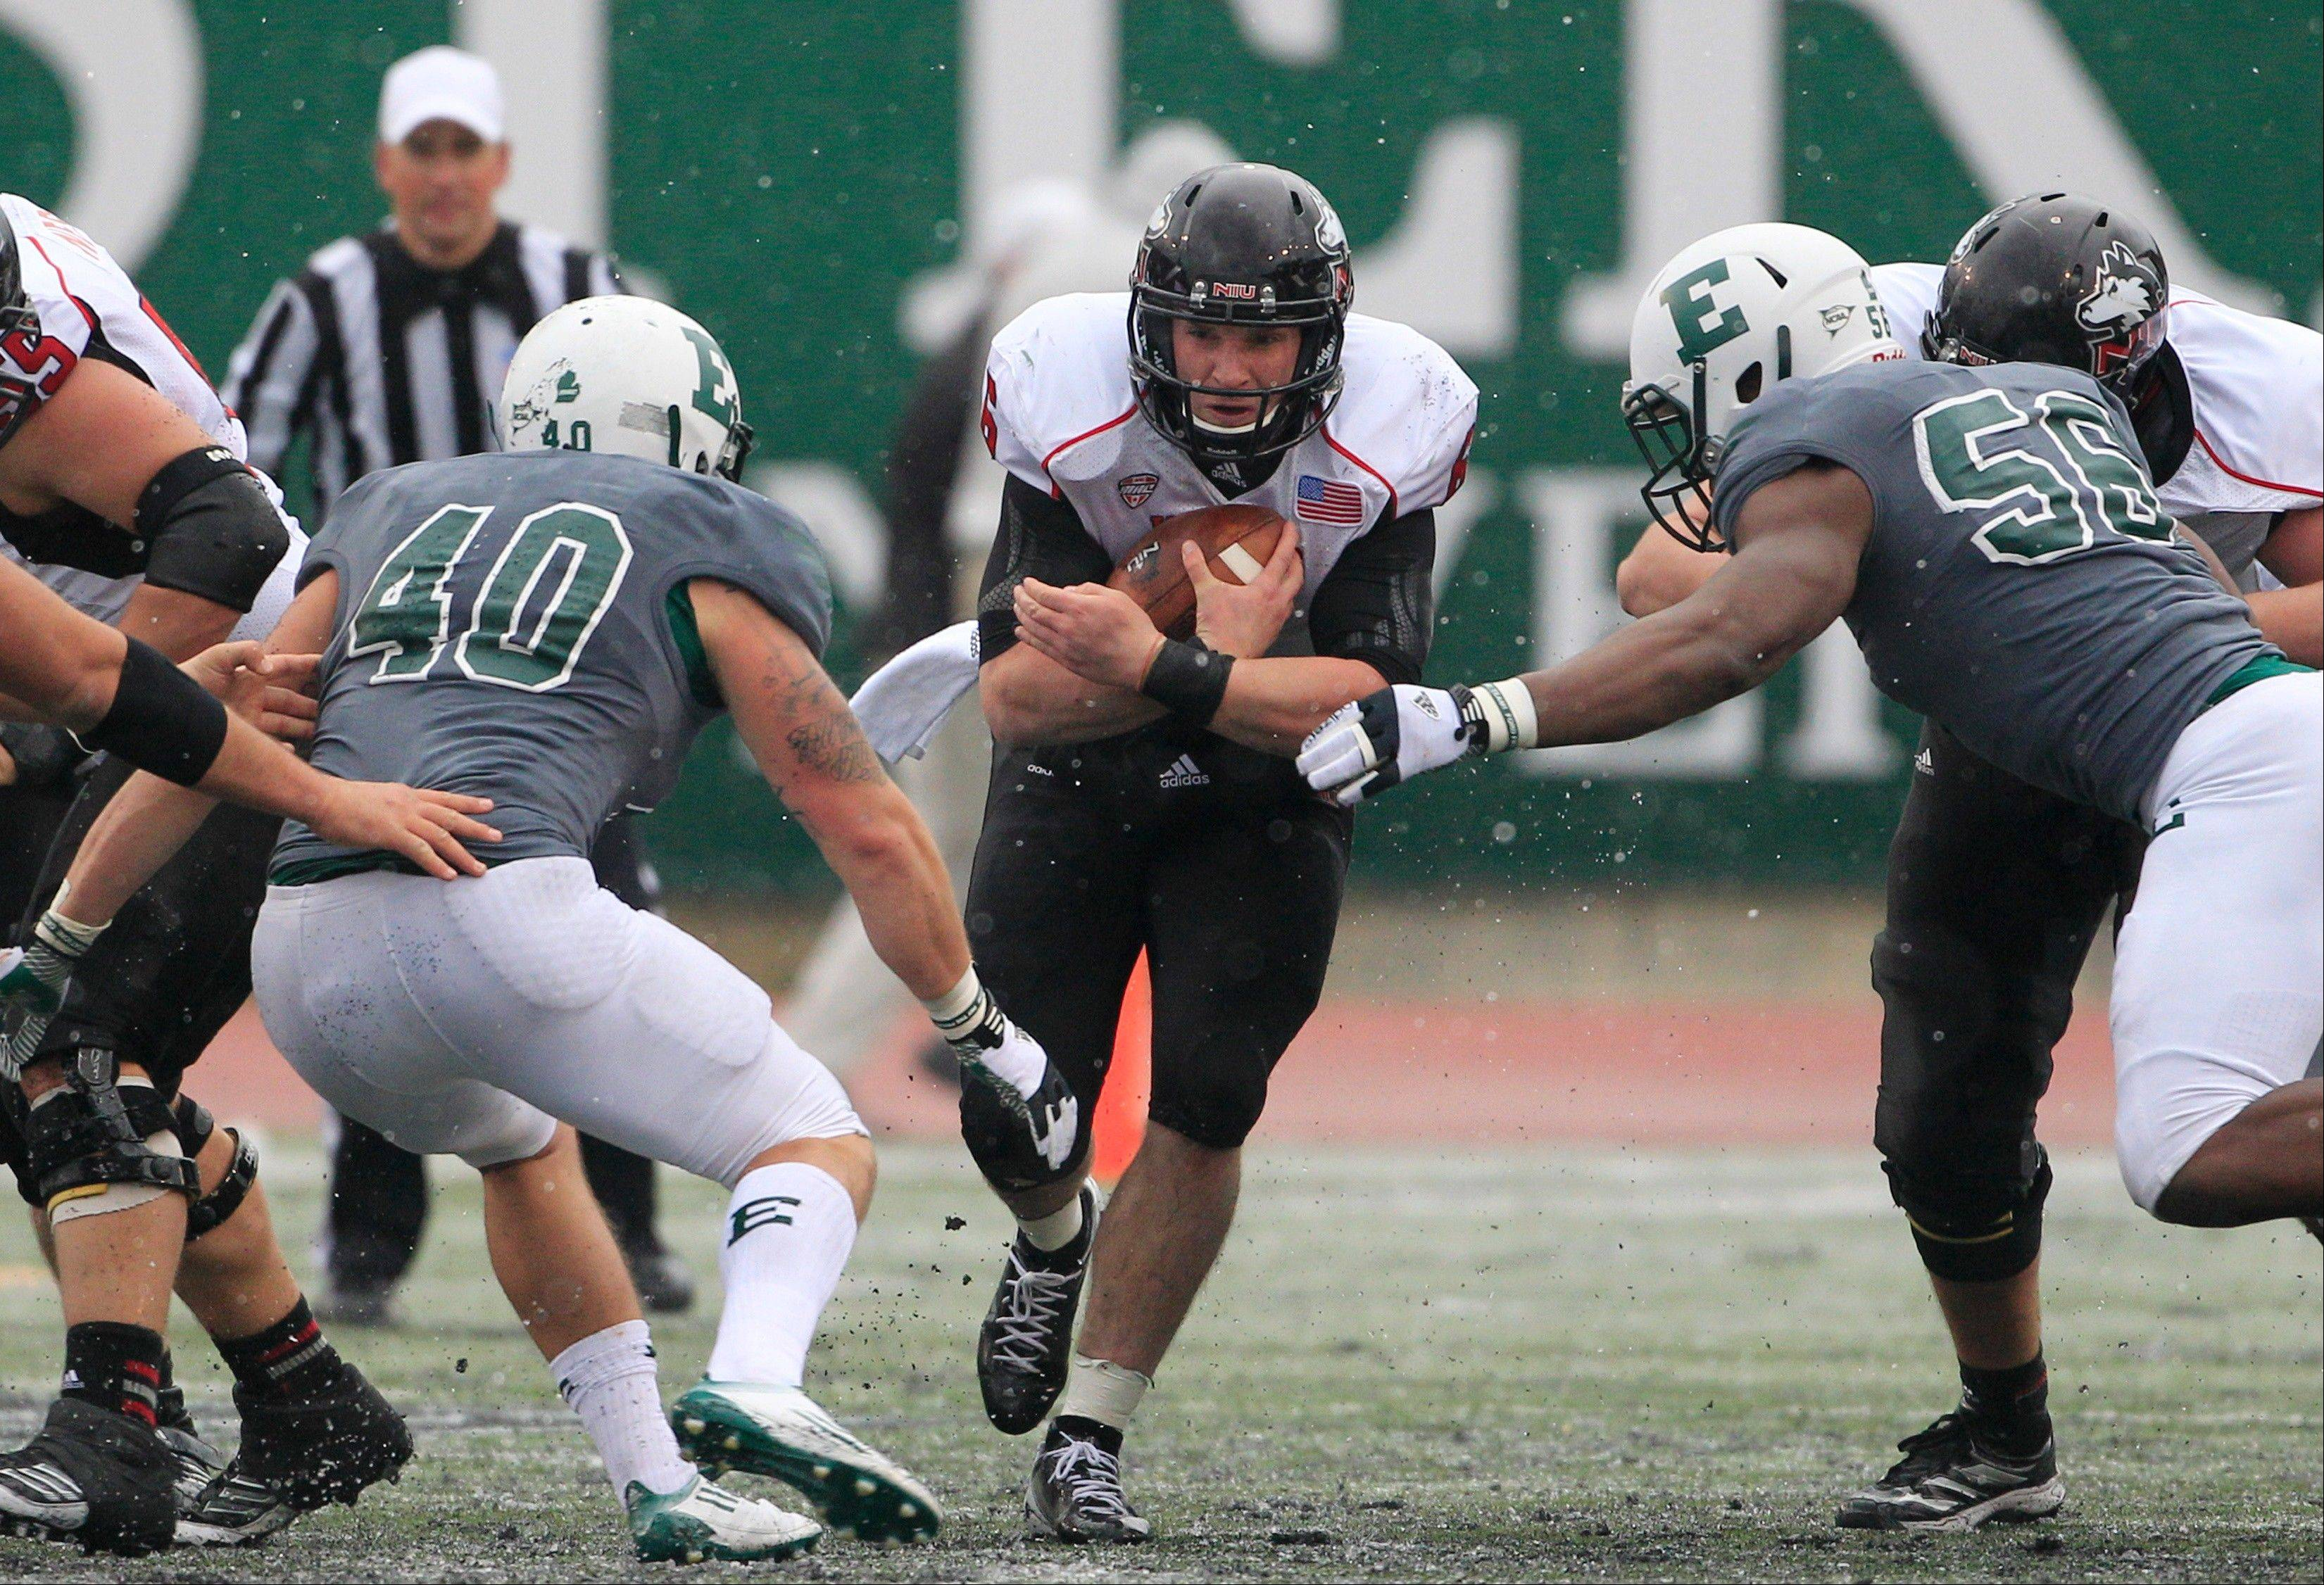 Northern Illinois quarterback Jordan Lynch runs through the defense of Eastern Michigan linebacker Sean Kurtz (40) and defensive lineman Andy Mulumba (56) Friday during the fourth quarter in Ypsilanti, Mich.